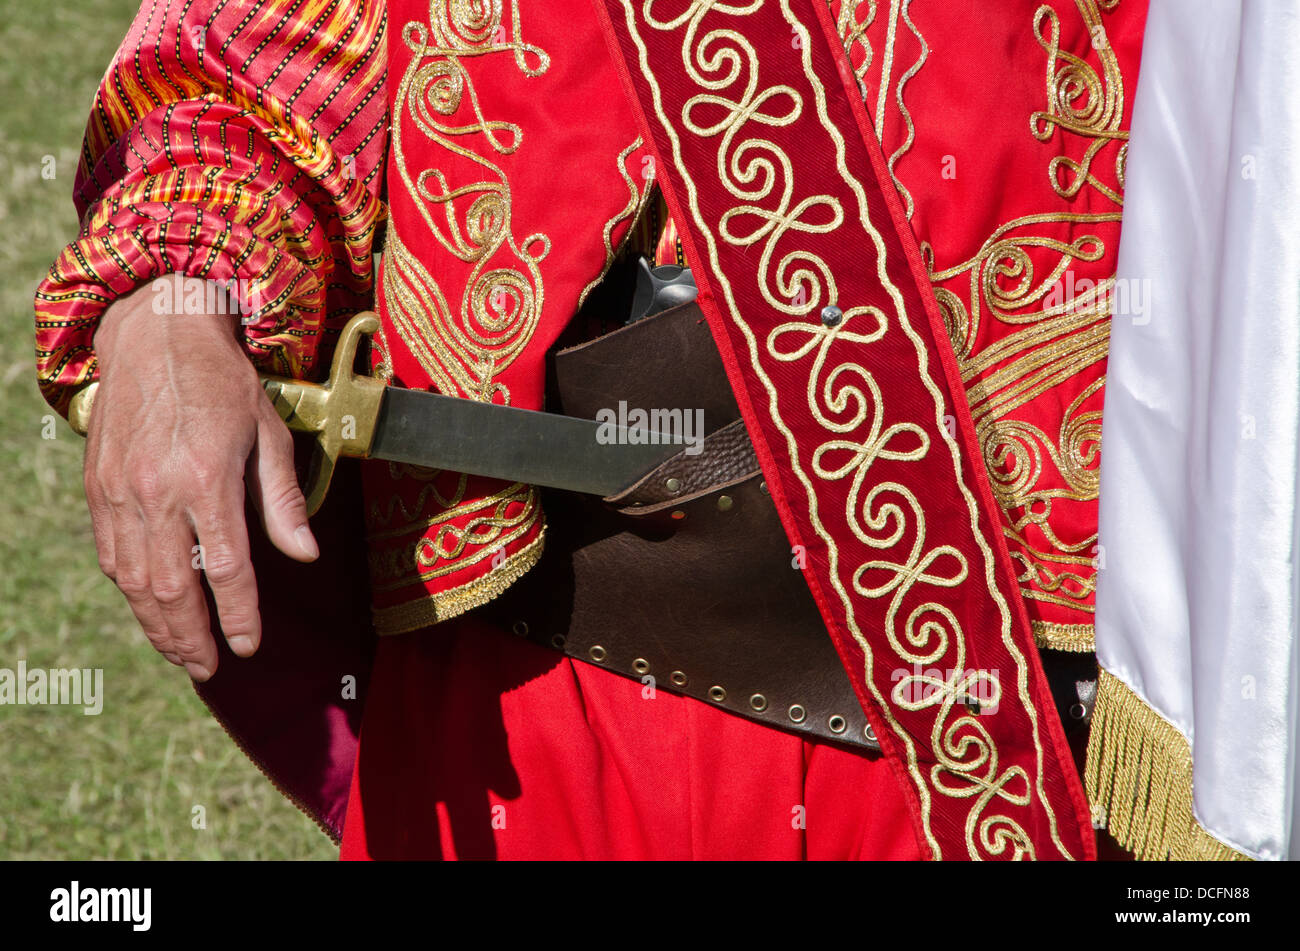 Turkish Man In Traditional Ottoman Dressed Outfit Holding Knife